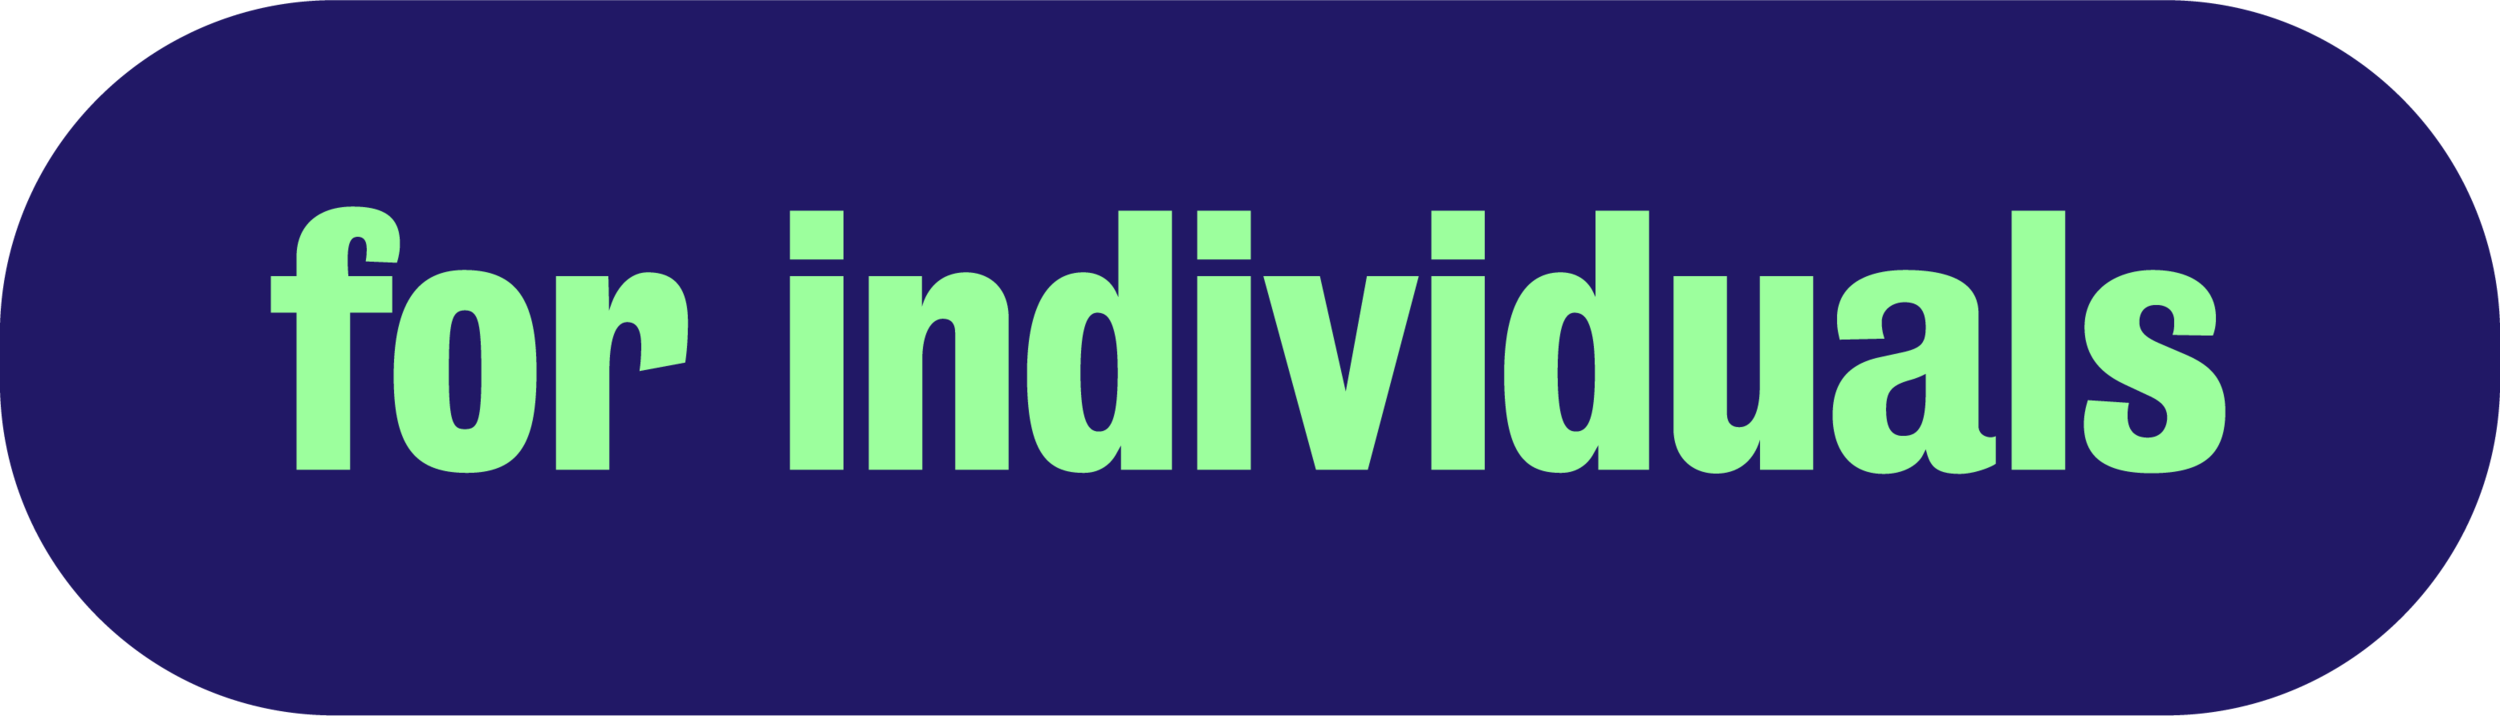 for-individuals.png